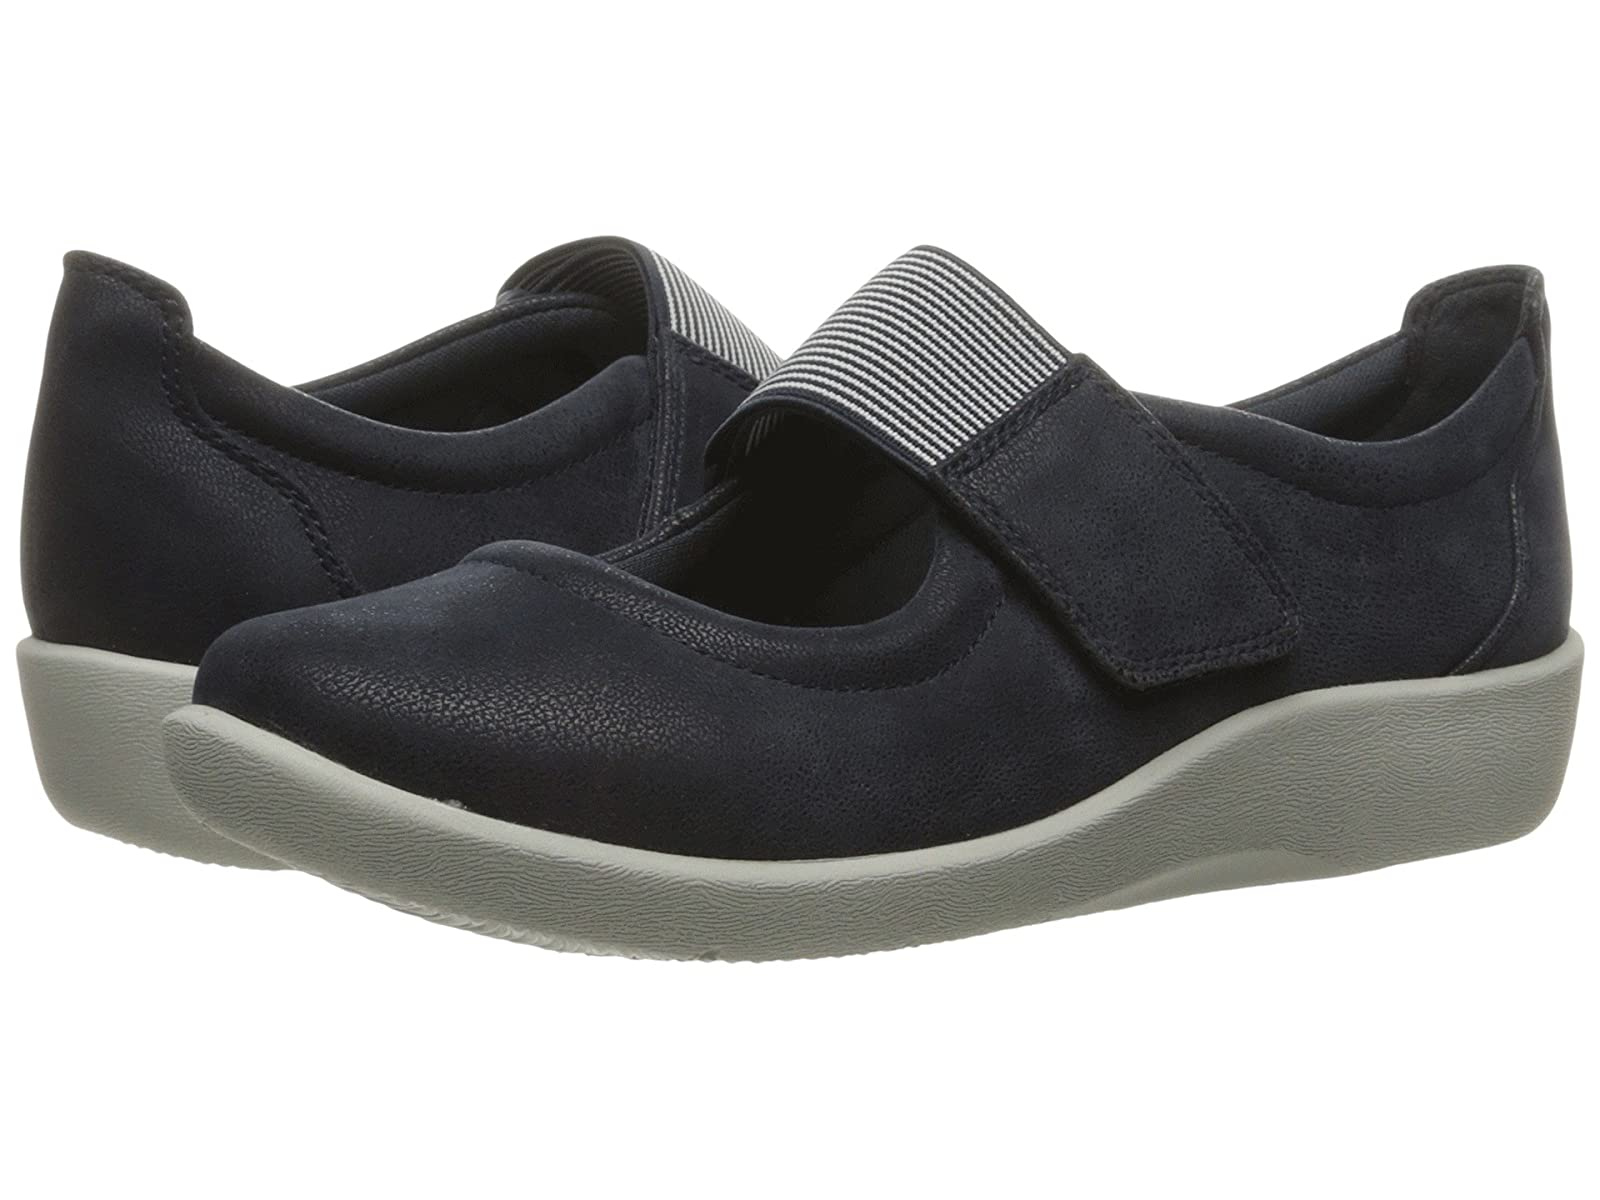 Man's/Woman's:Clarks Sillian Sillian Man's/Woman's:Clarks Cala : New Style e1ec98